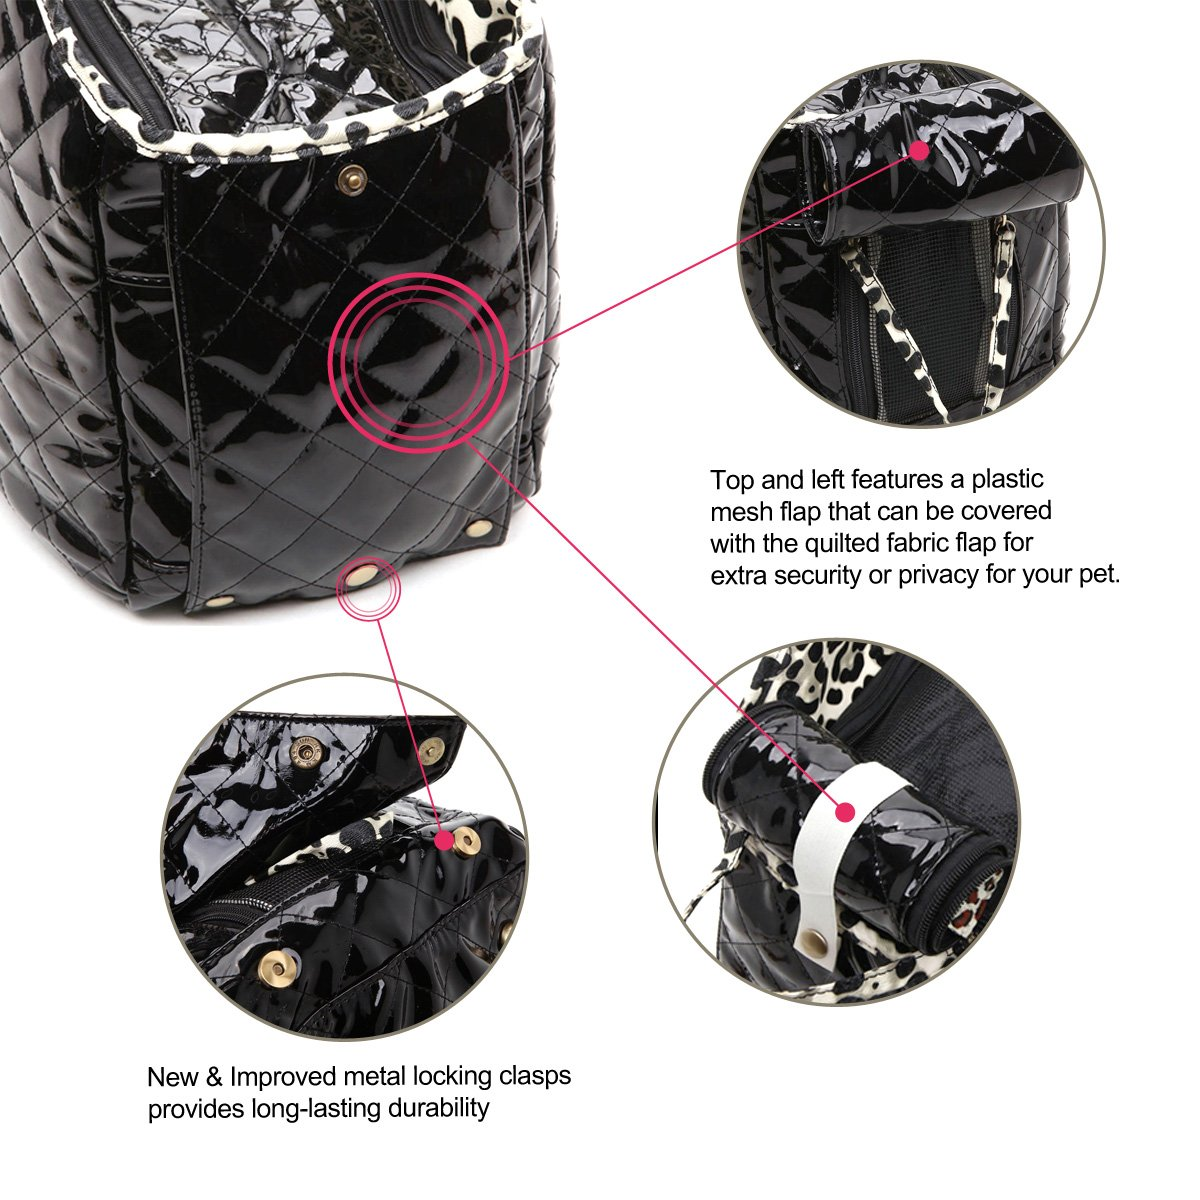 Dog Carrier Purse Pet Travel Bag Cat Portable Handbag,Soft Sided Tote with 2 Fleece Pads for Small Pets,Come with a Pet Comb,Up to 15lbs,Easy to Storage,Go Hiking Shopping with Your Doggy (black) by ZOOSTAR (Image #7)